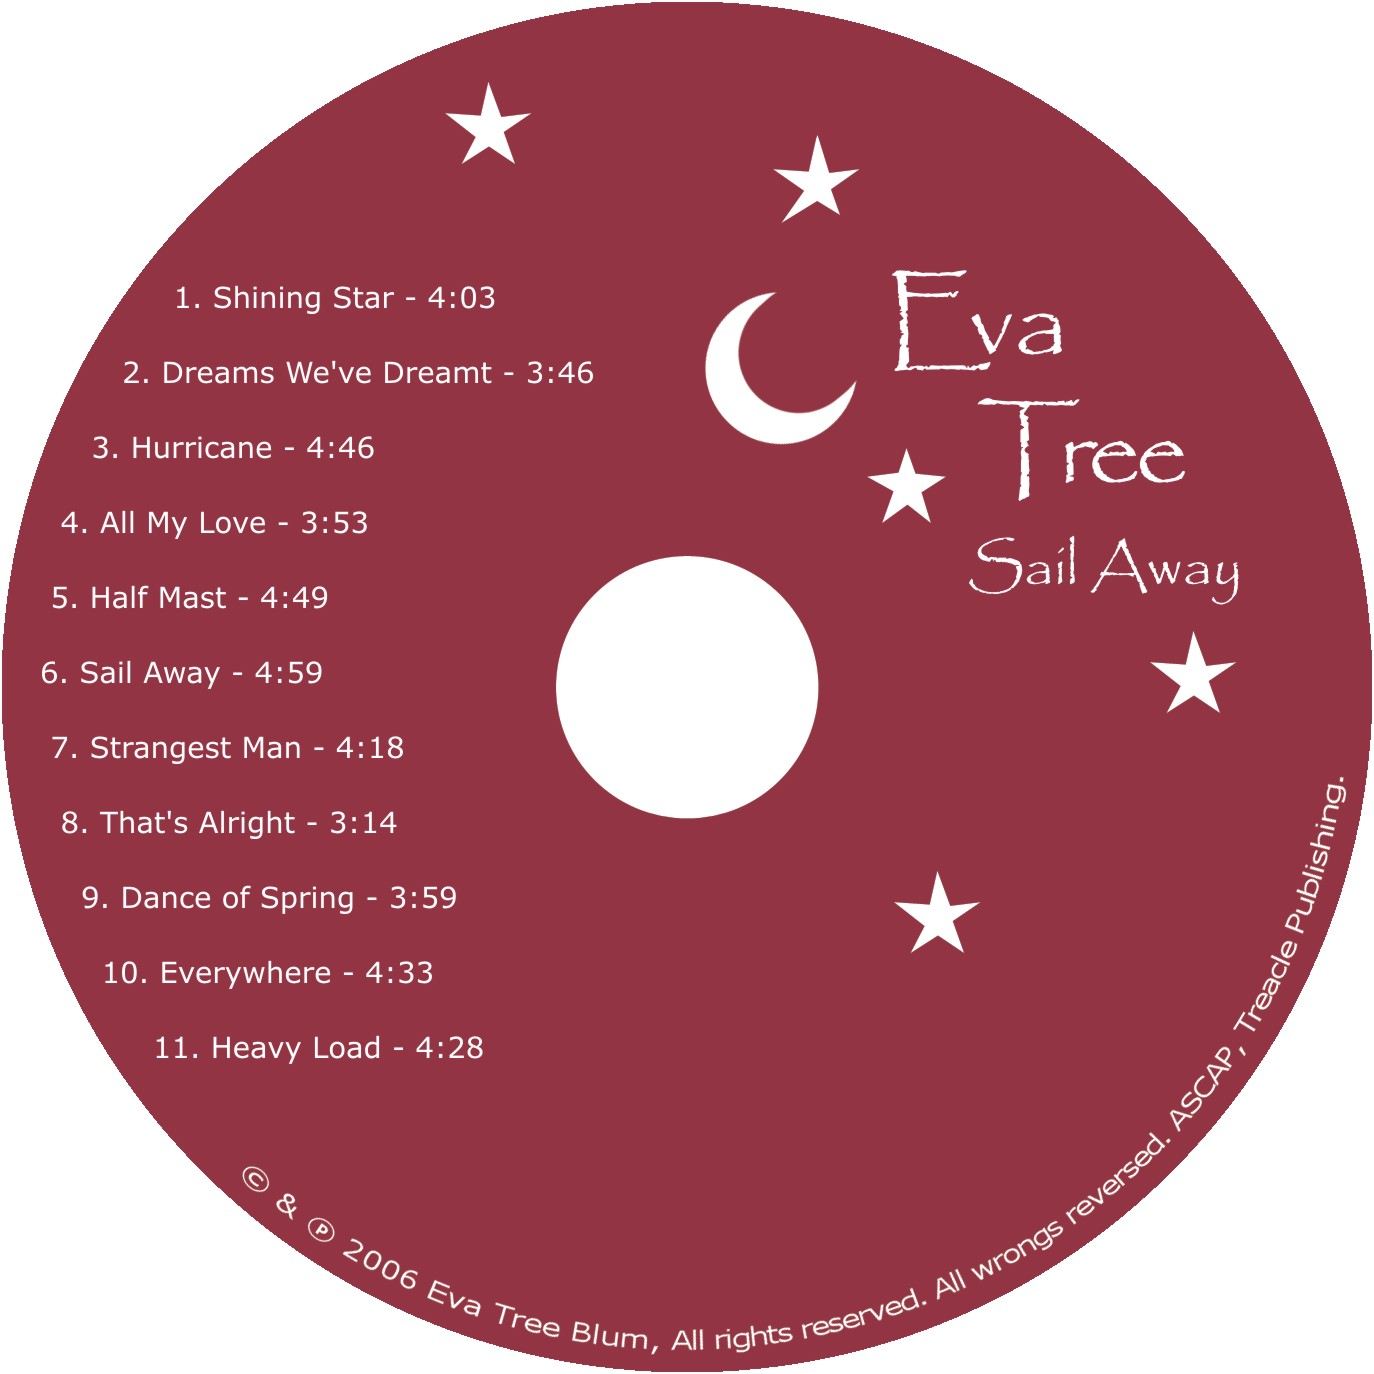 Eva Tree - Sail Away - CD Diskface